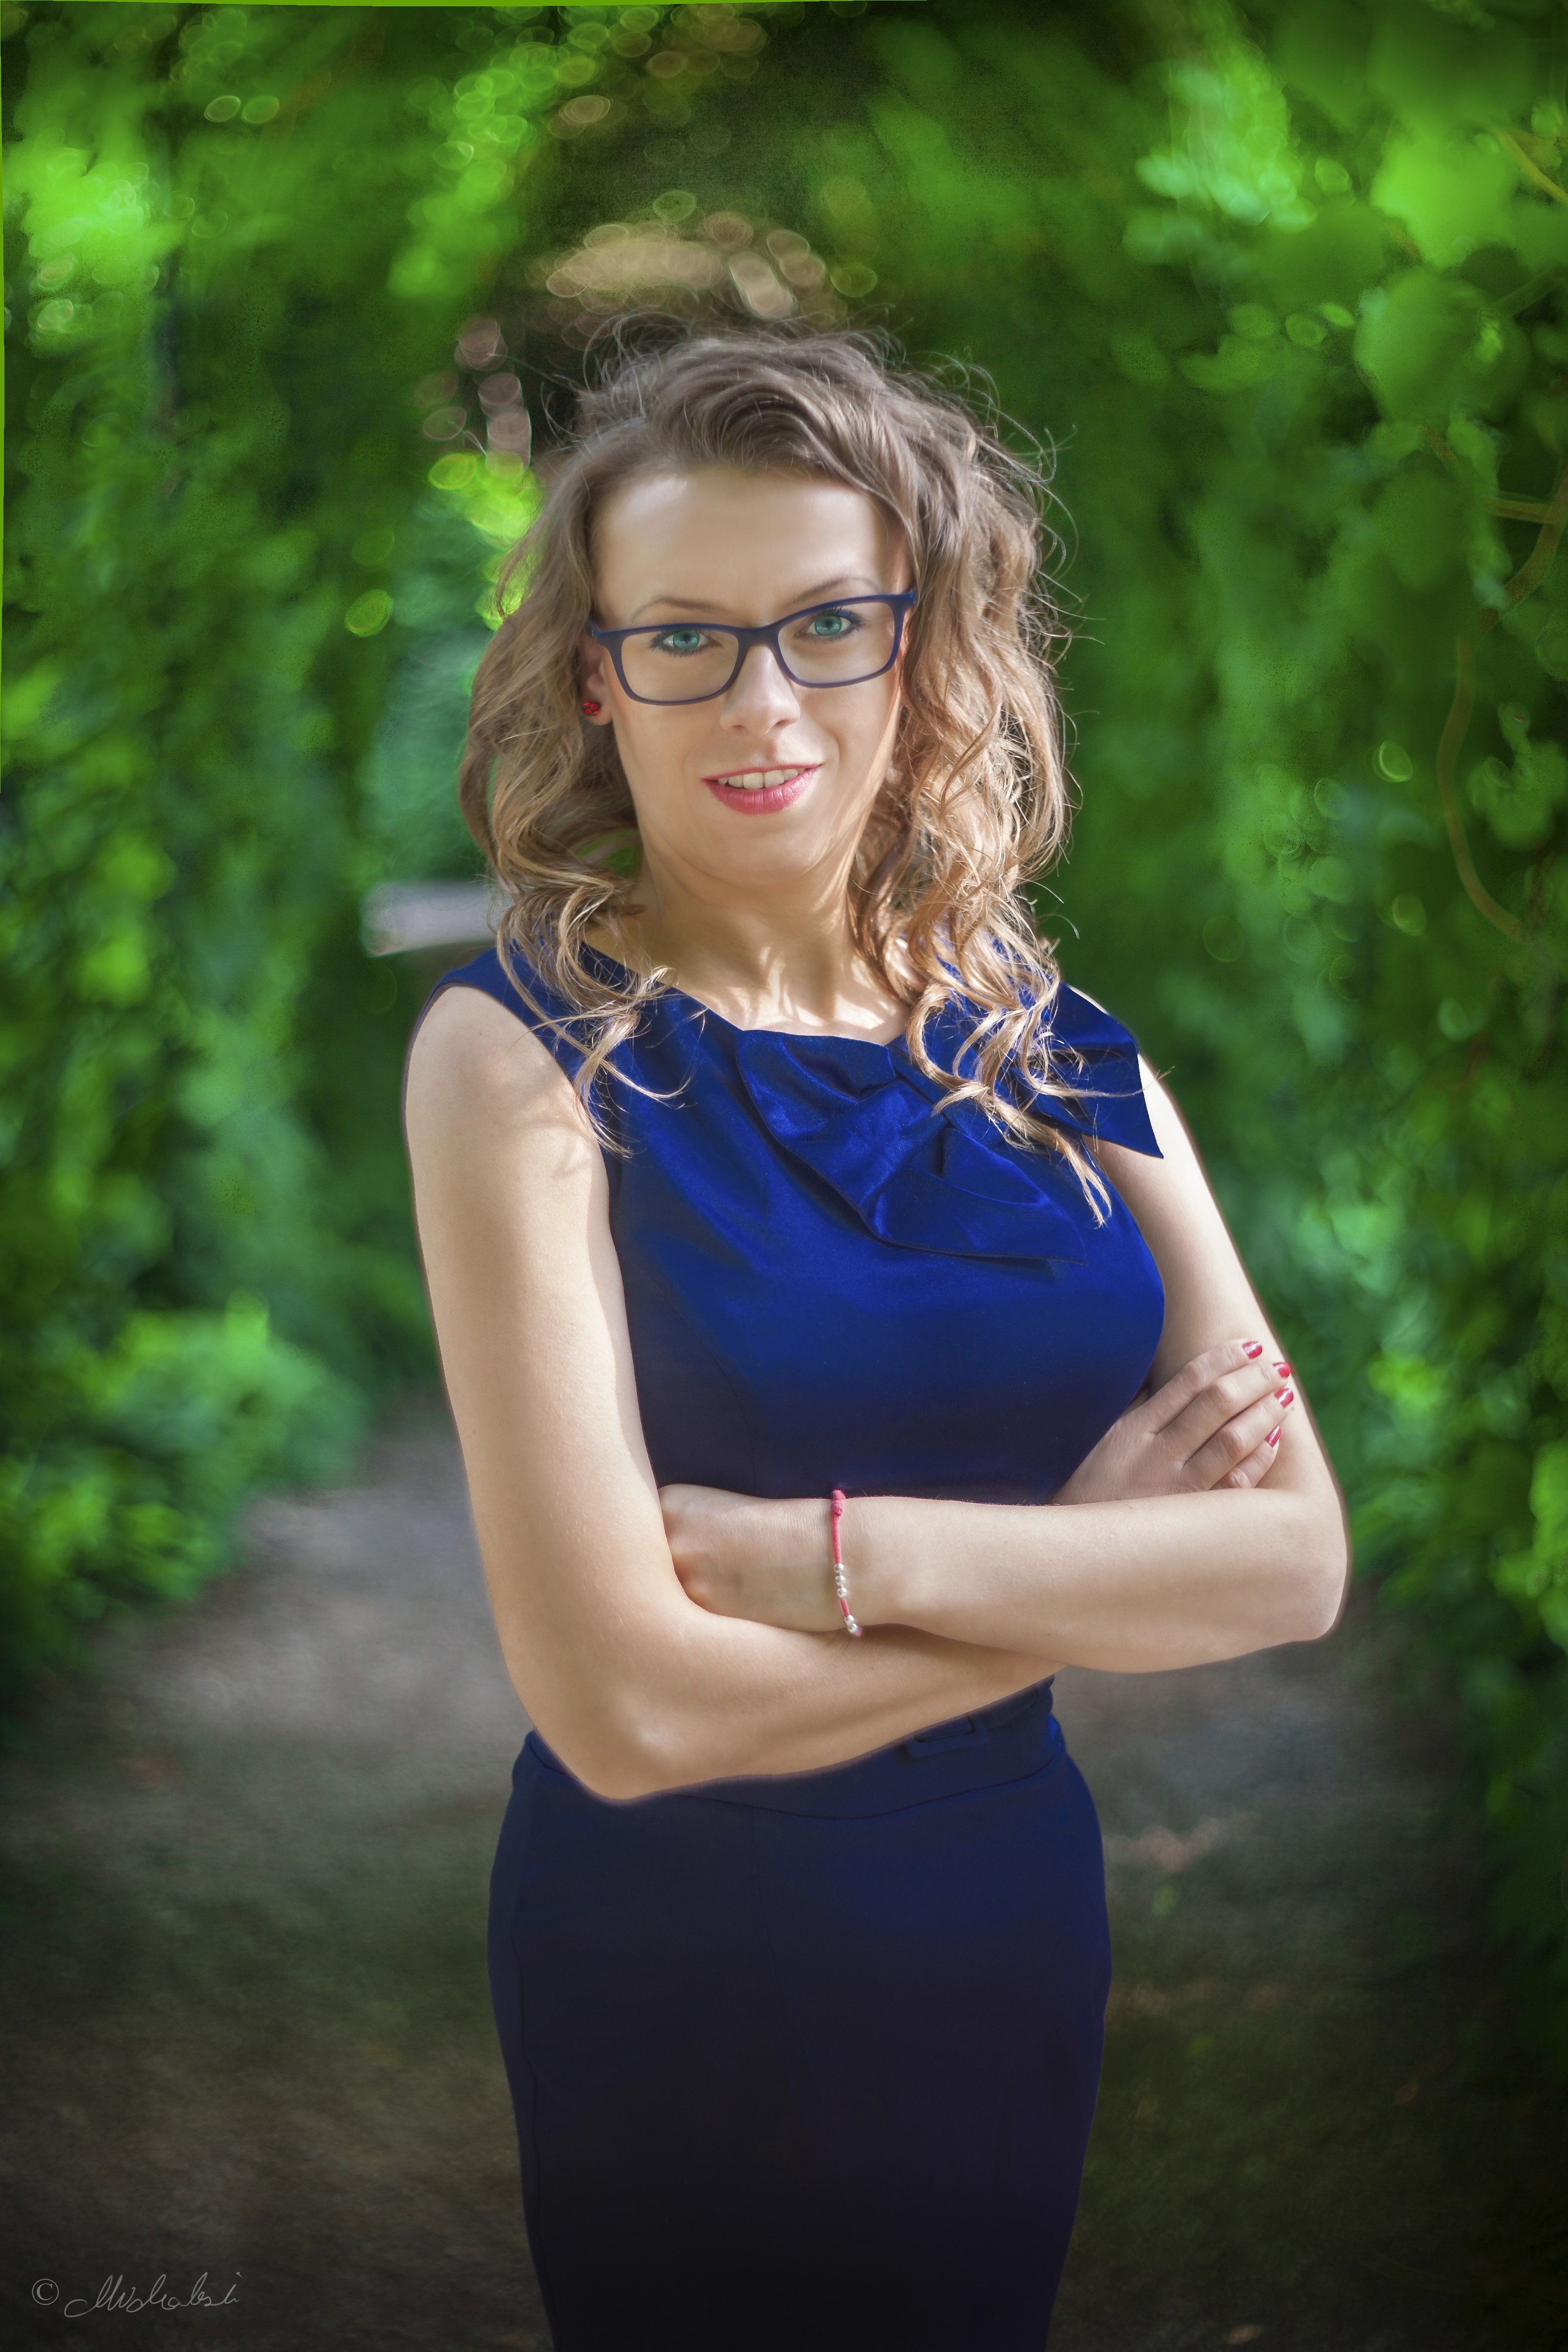 Beautiful lady in a blue dress ~ People Photos ~ Creative Market